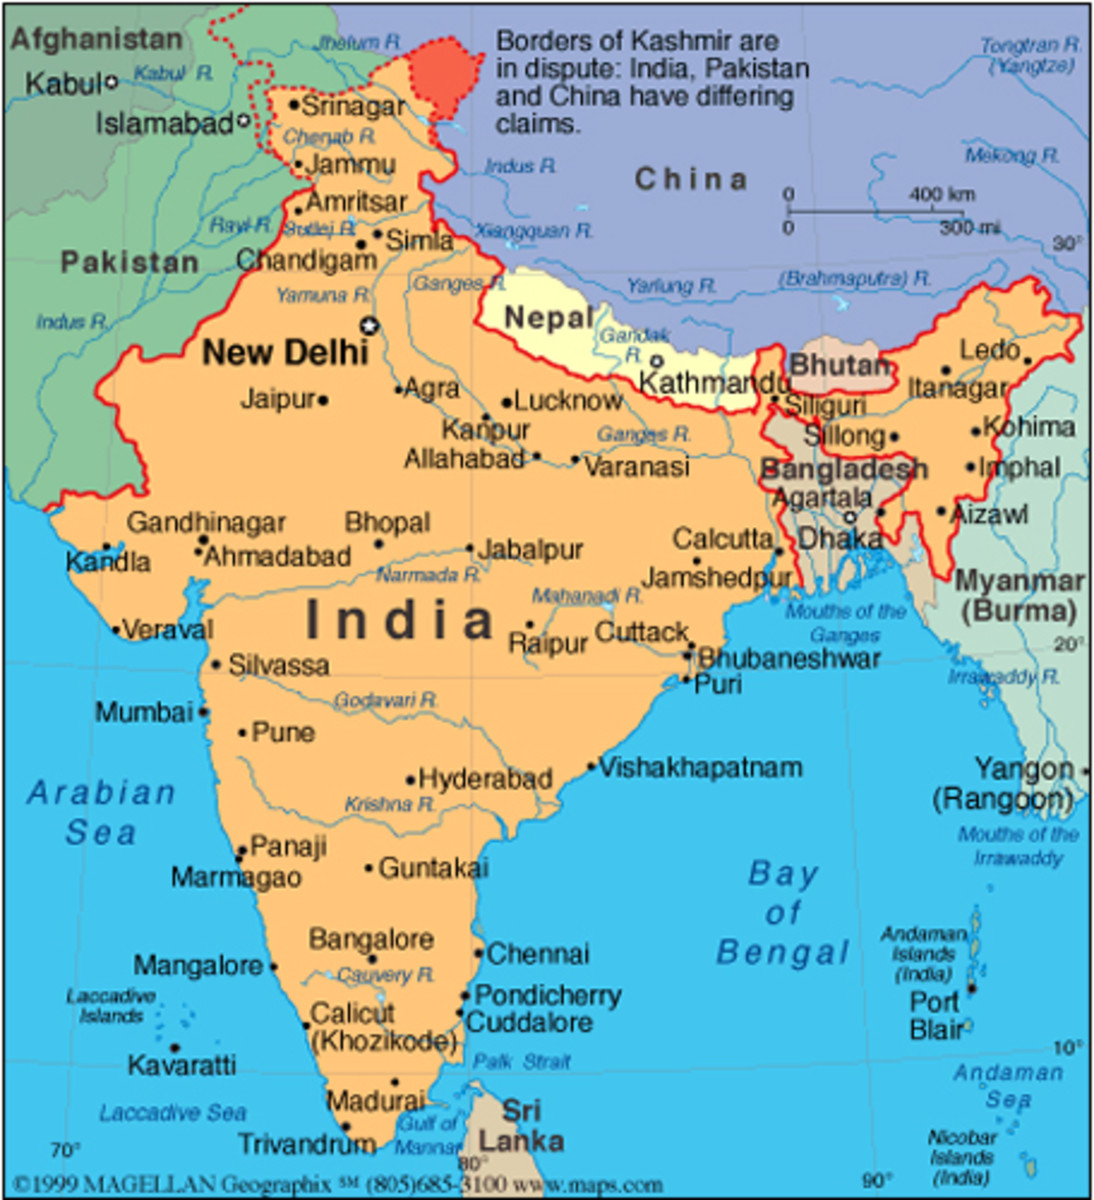 Map of India and neighboring countries